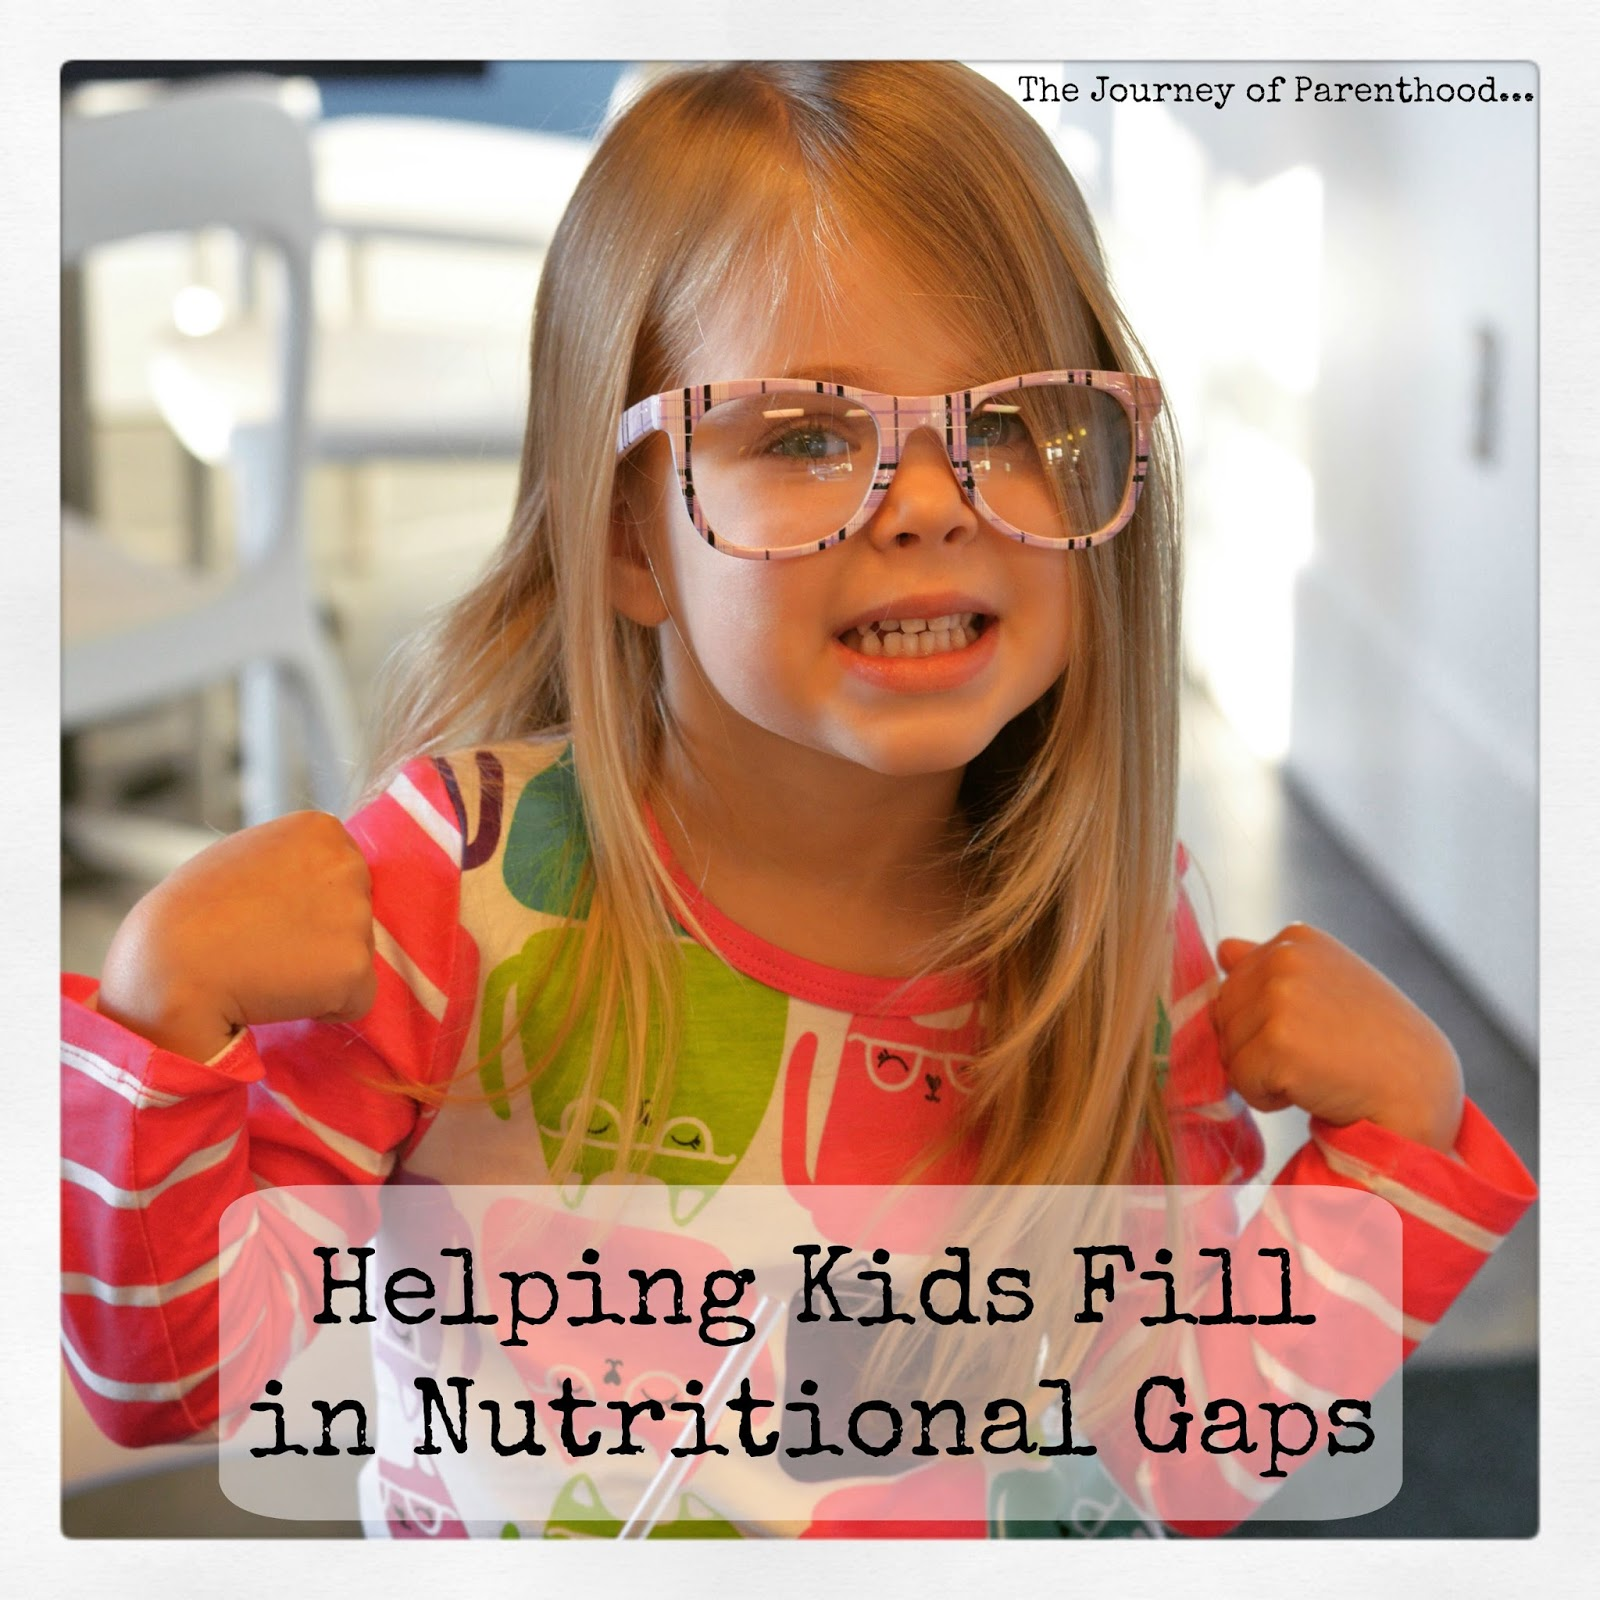 Healthy Kids: Filling in Nutritional Gaps